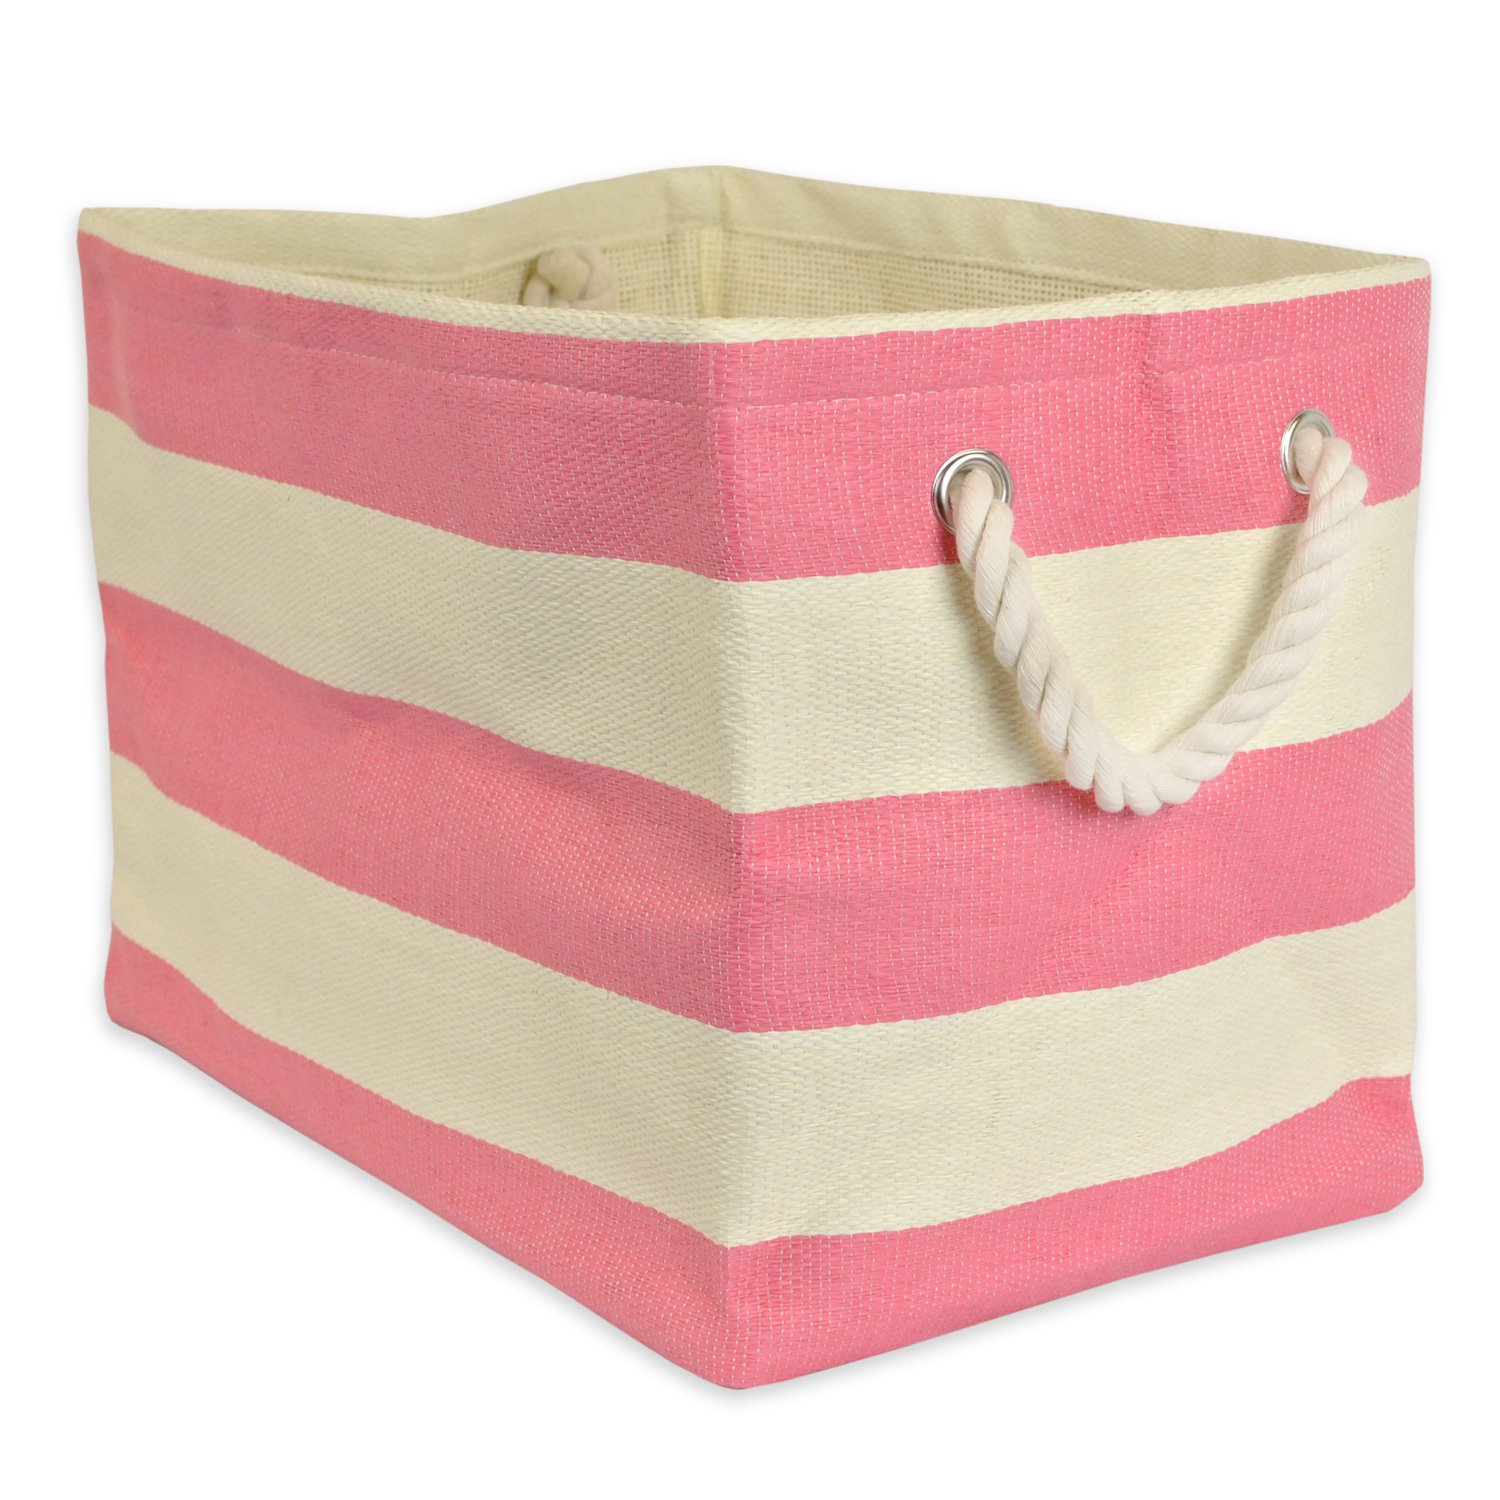 DII Woven Paper Storage Basket or Bin, Collapsible & Convenient Home Organization Solution for Office, Bedroom, Closet, Toys, & Laundry (Small - 11x10x9�), Pink Rugby Stripe